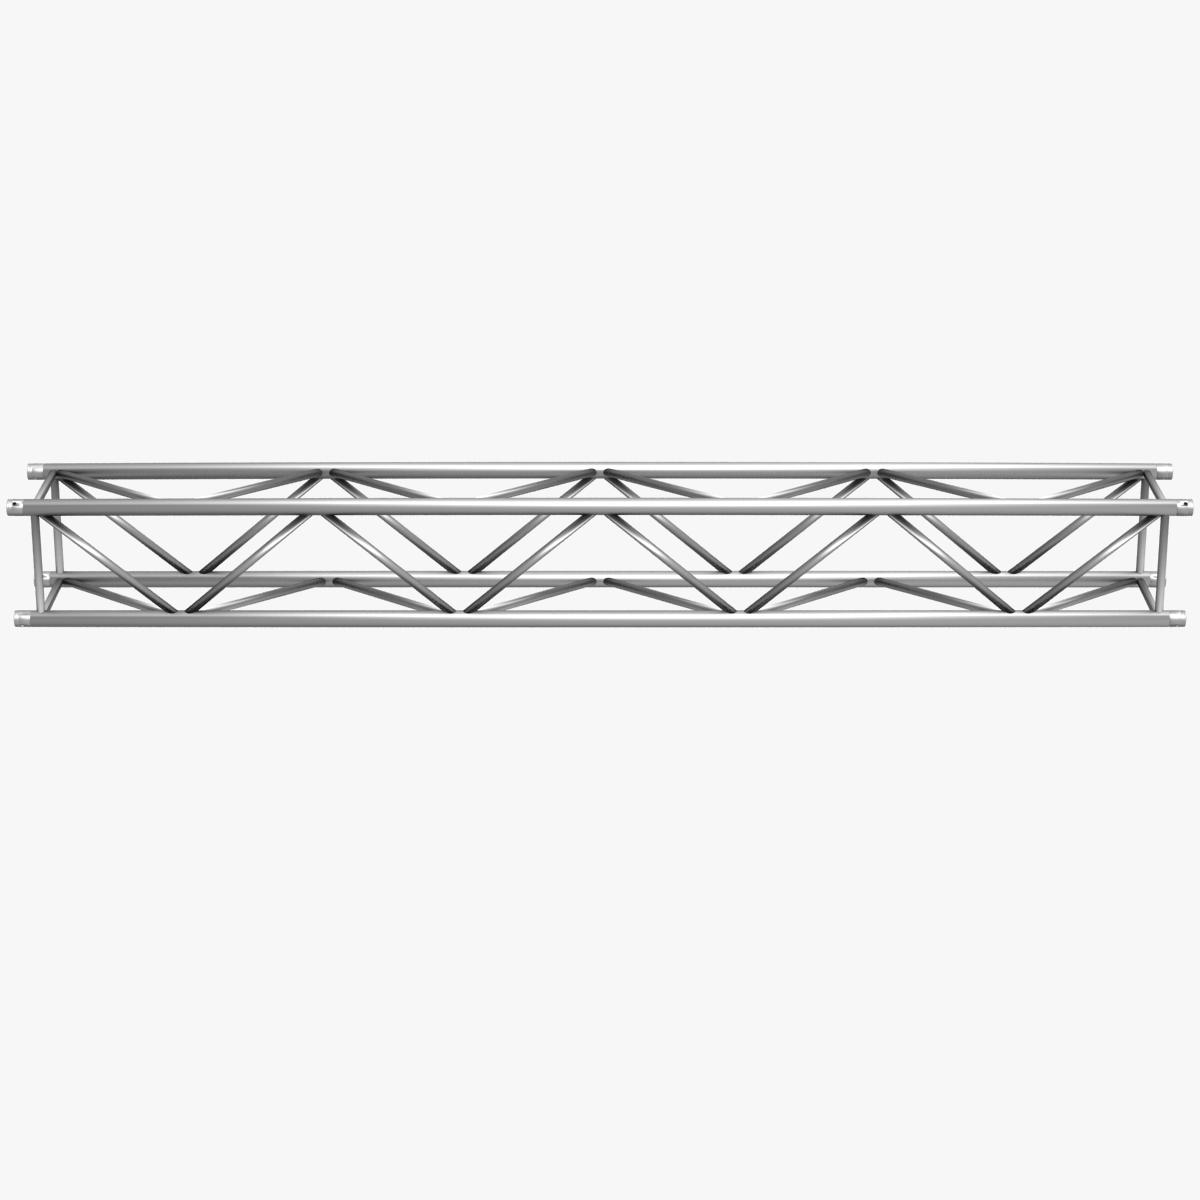 big square truss (collection 10 modular pieces) 3d model 3ds dxf fbx c4d dae  268555